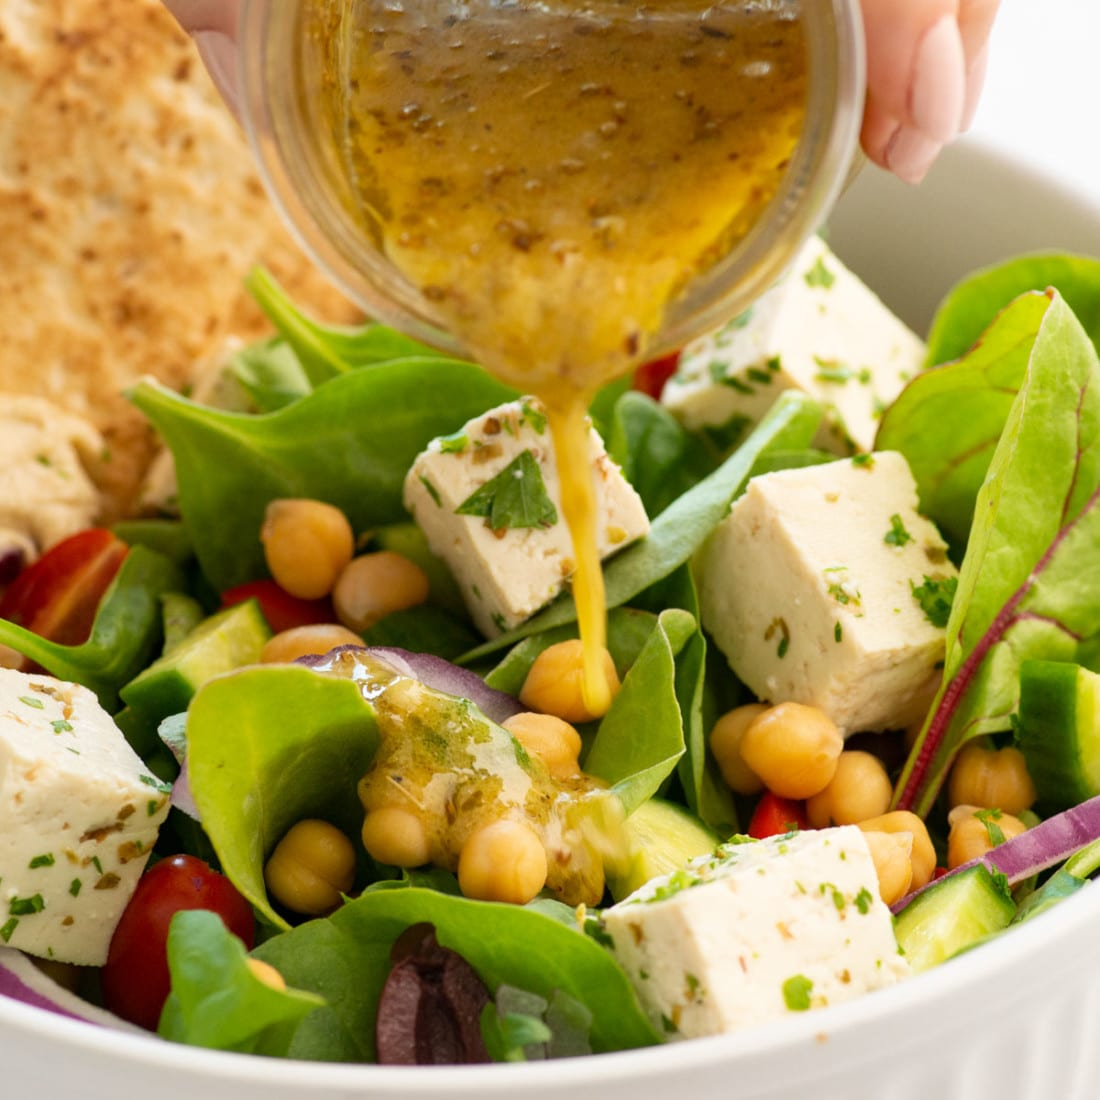 close up view of pouring Greek salad dressing over the bowl of salad